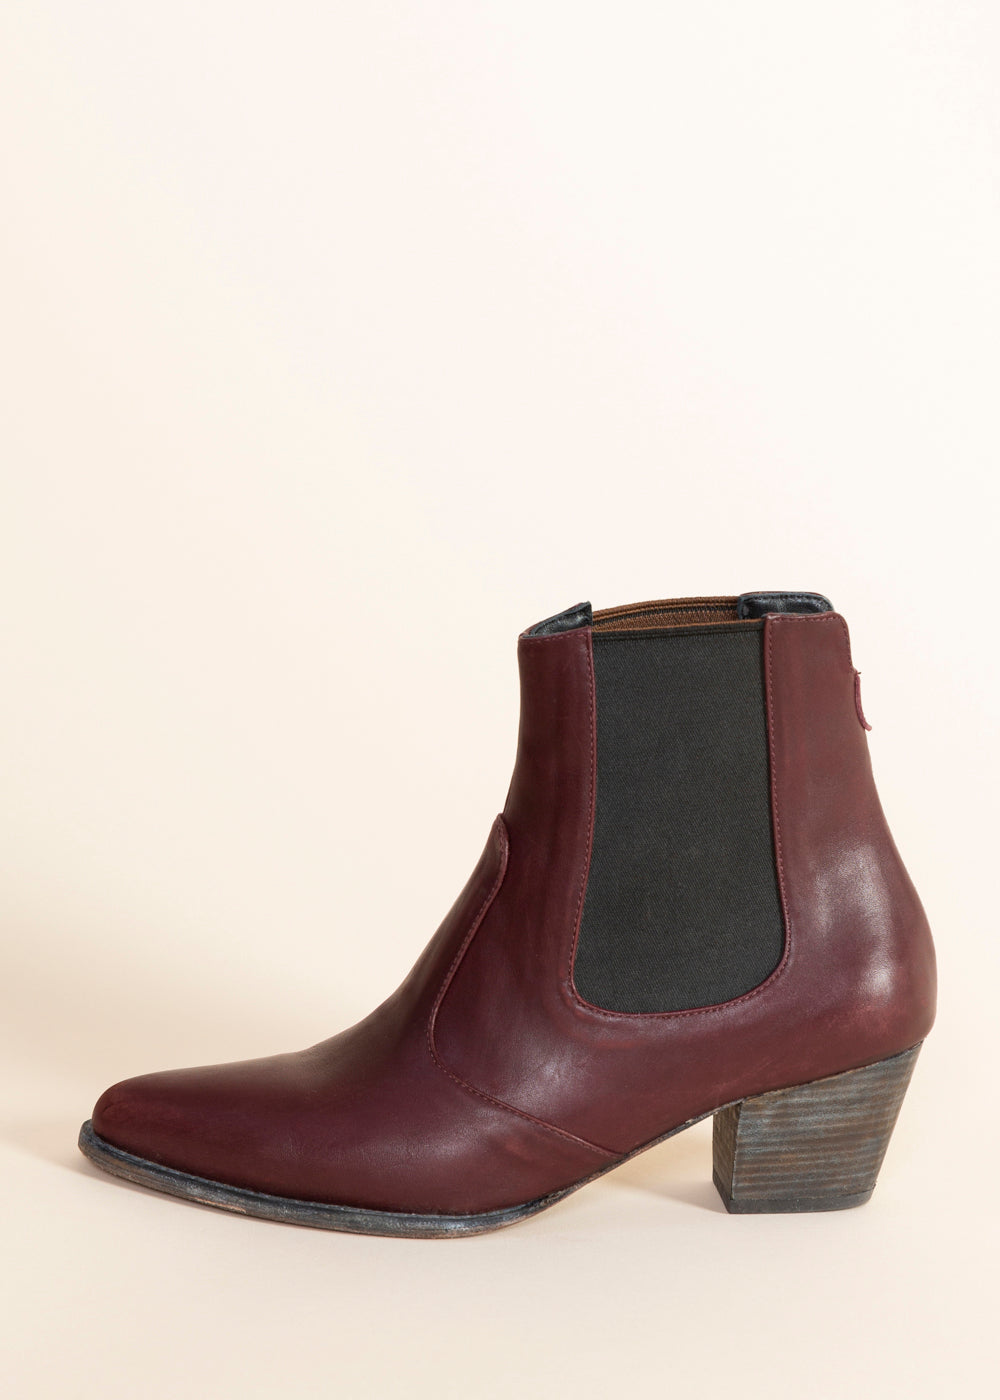 Esquivel West Ankle Boot